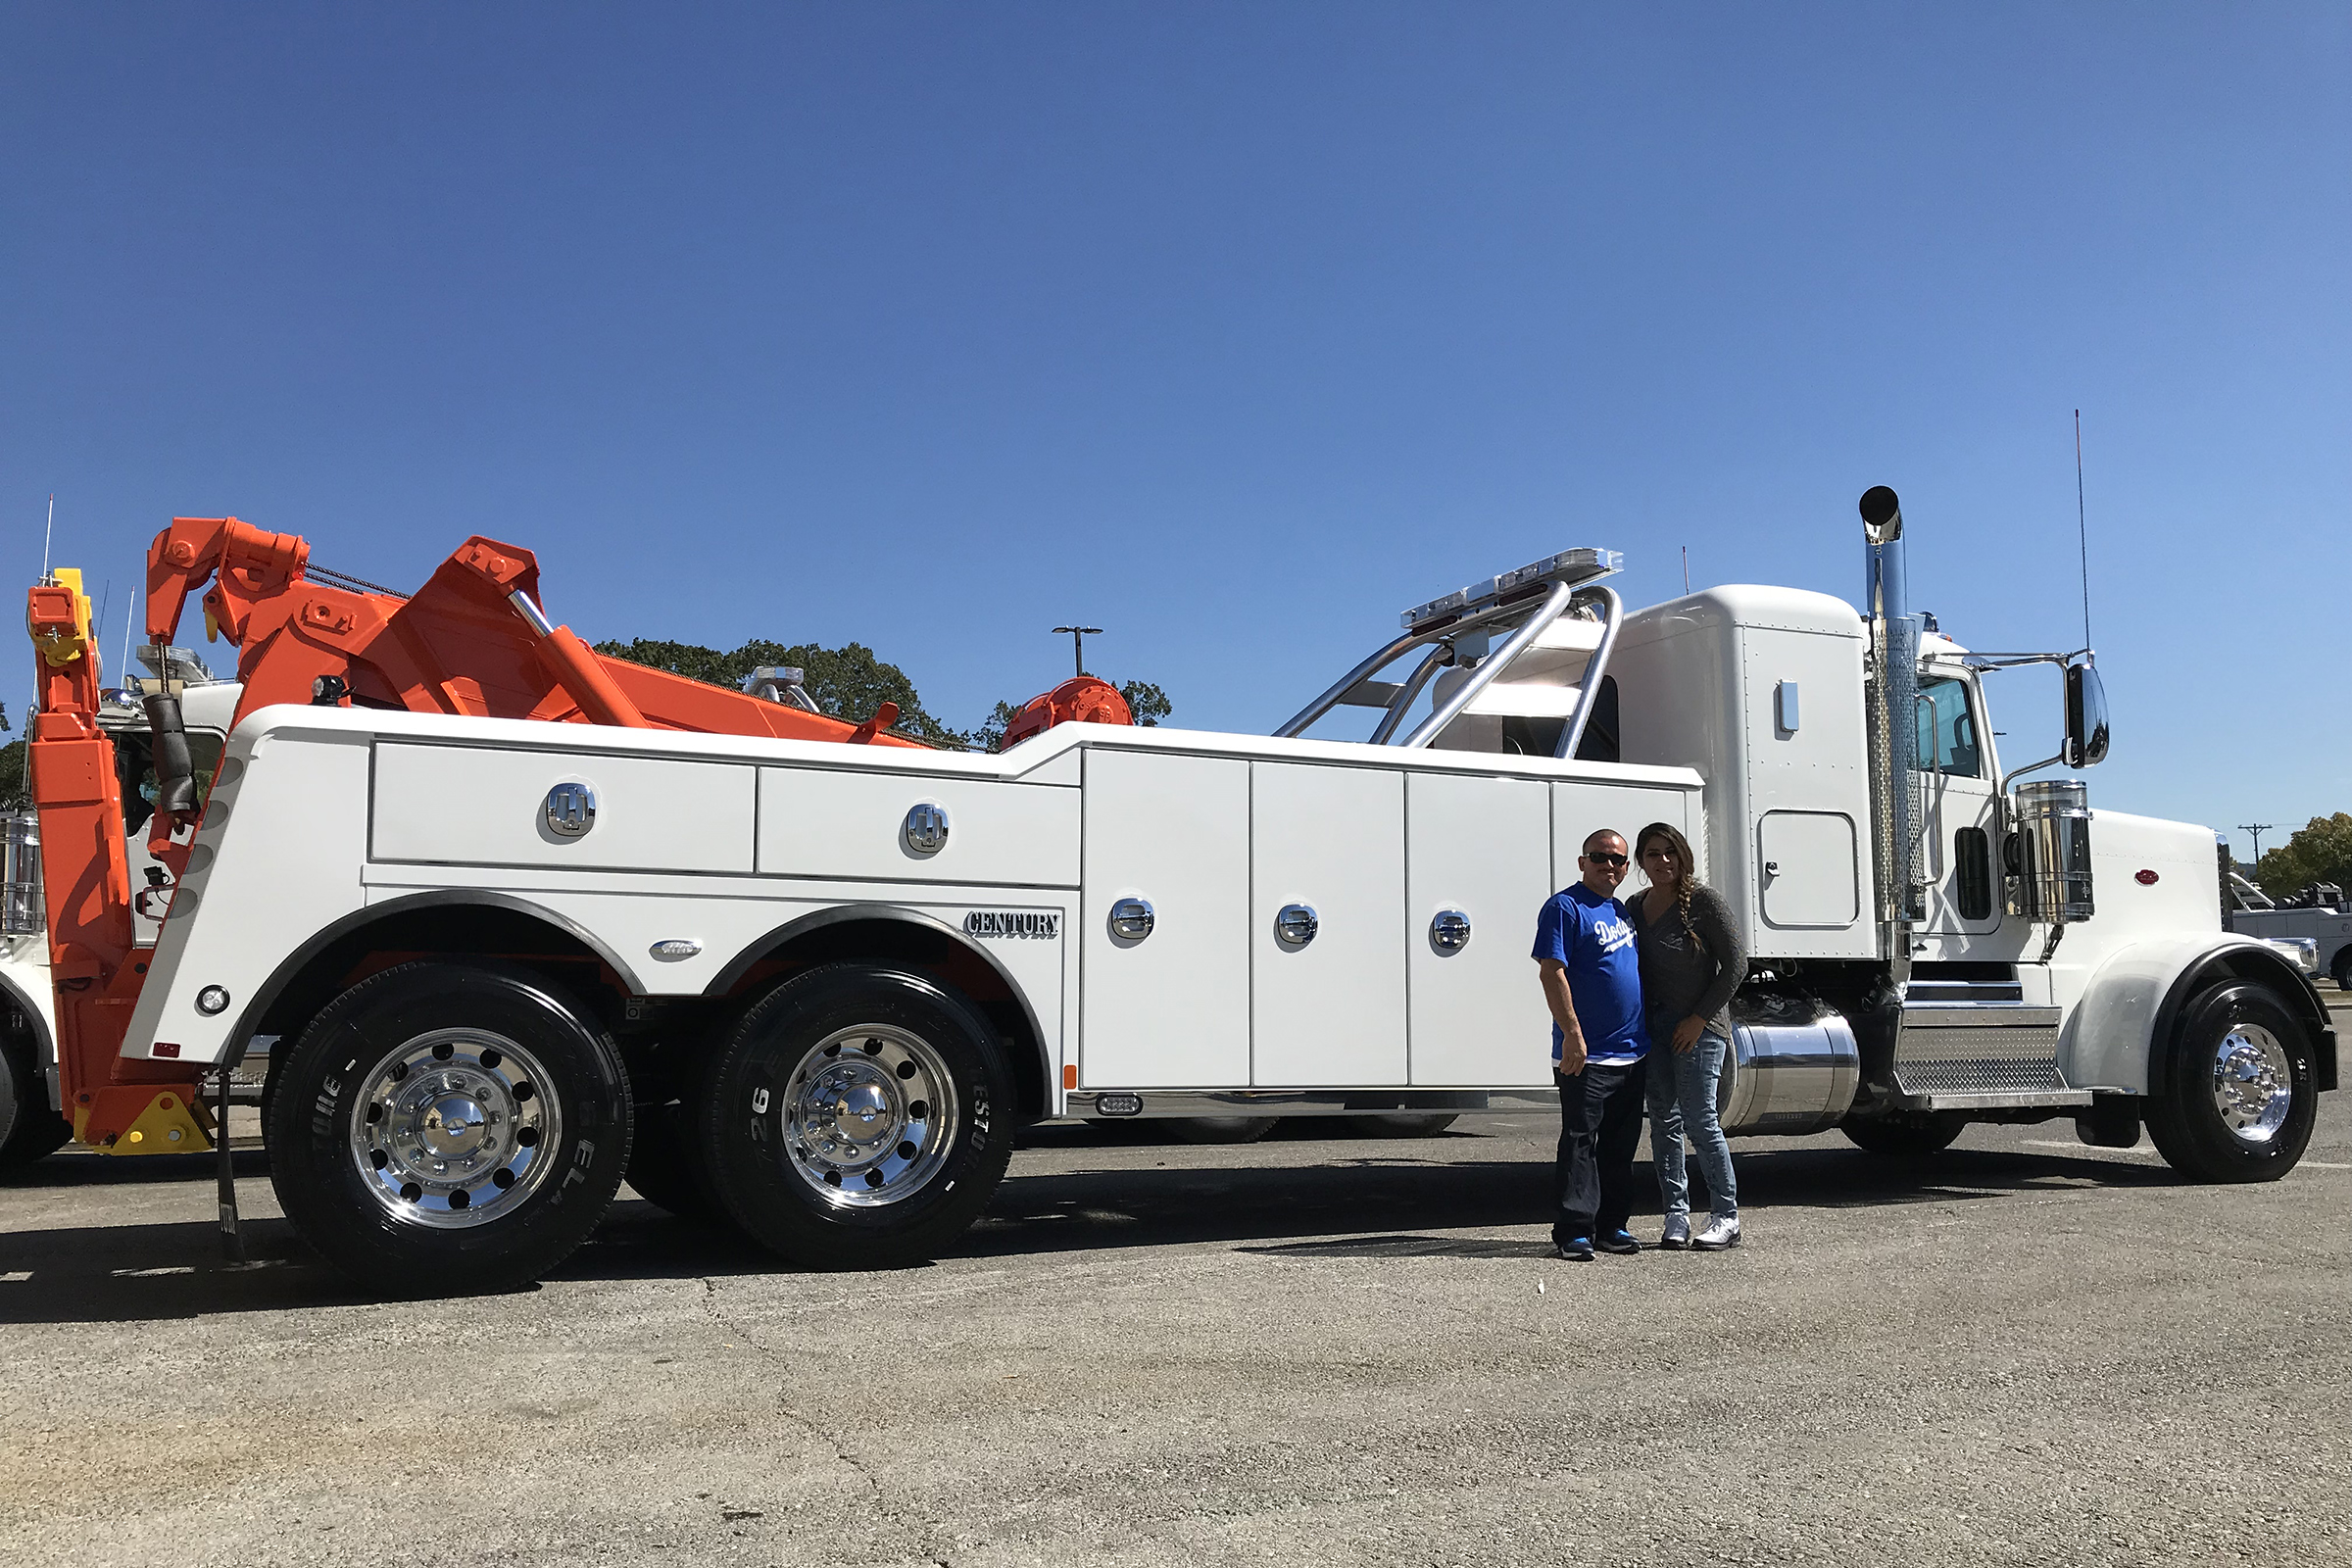 Edwin's Towing Service, Upland, CA / Century 5130